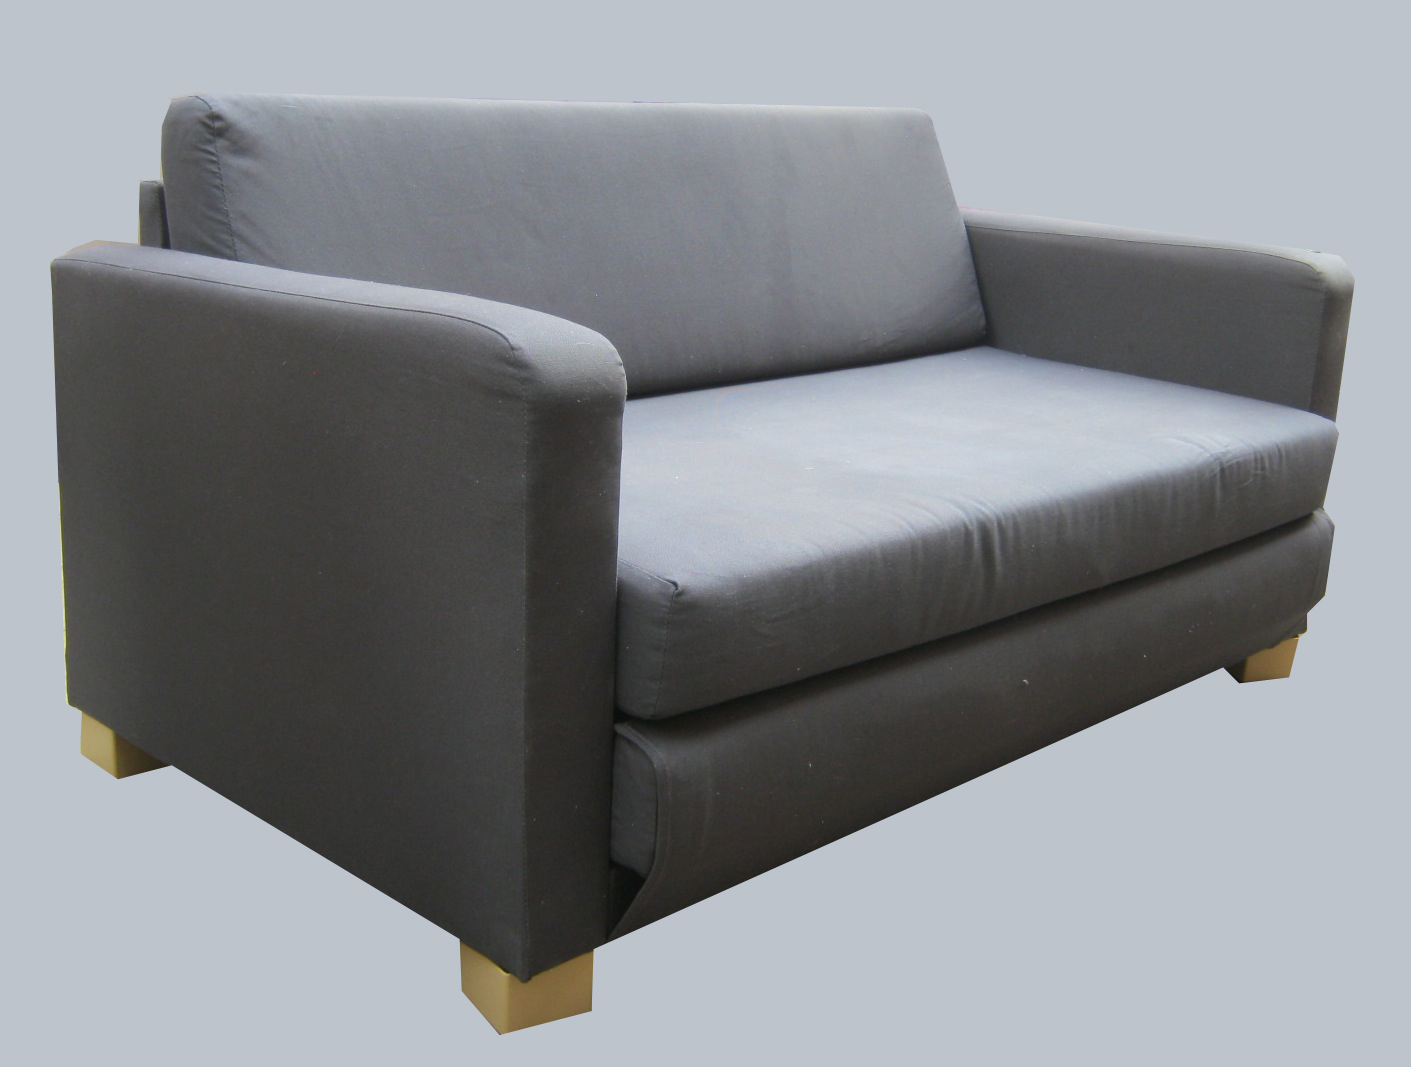 Convertible Chair Bed Ikea Black Rattan Uhuru Furniture And Collectibles Loveseat